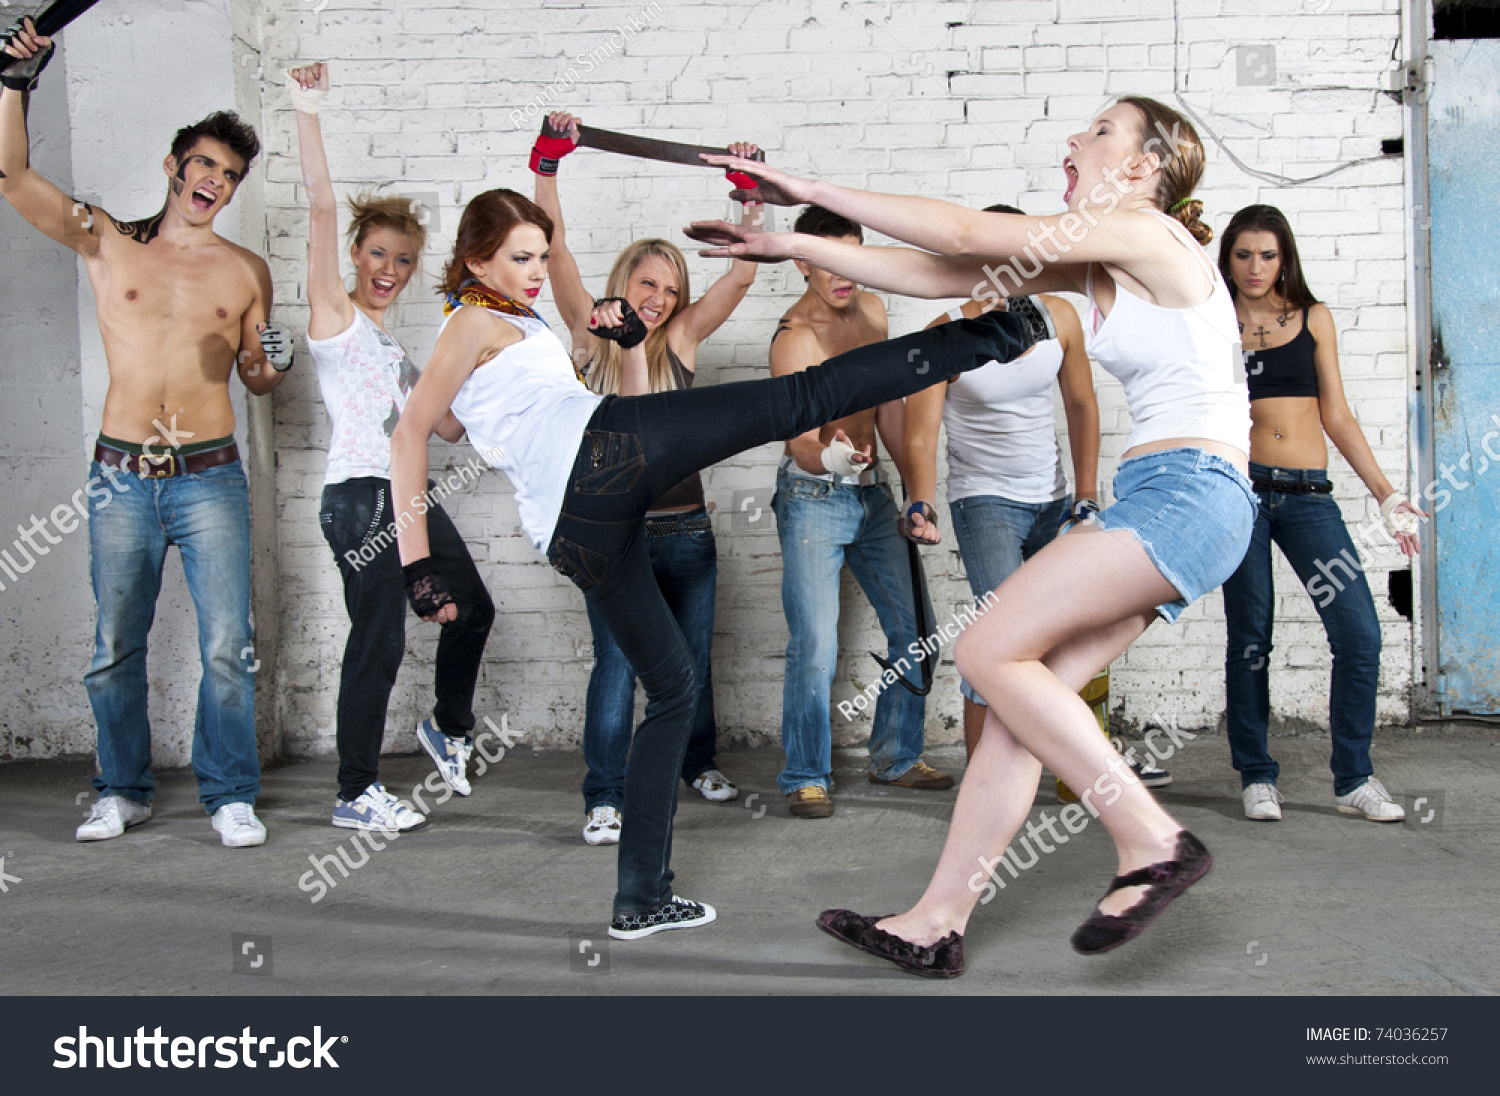 girls that fight